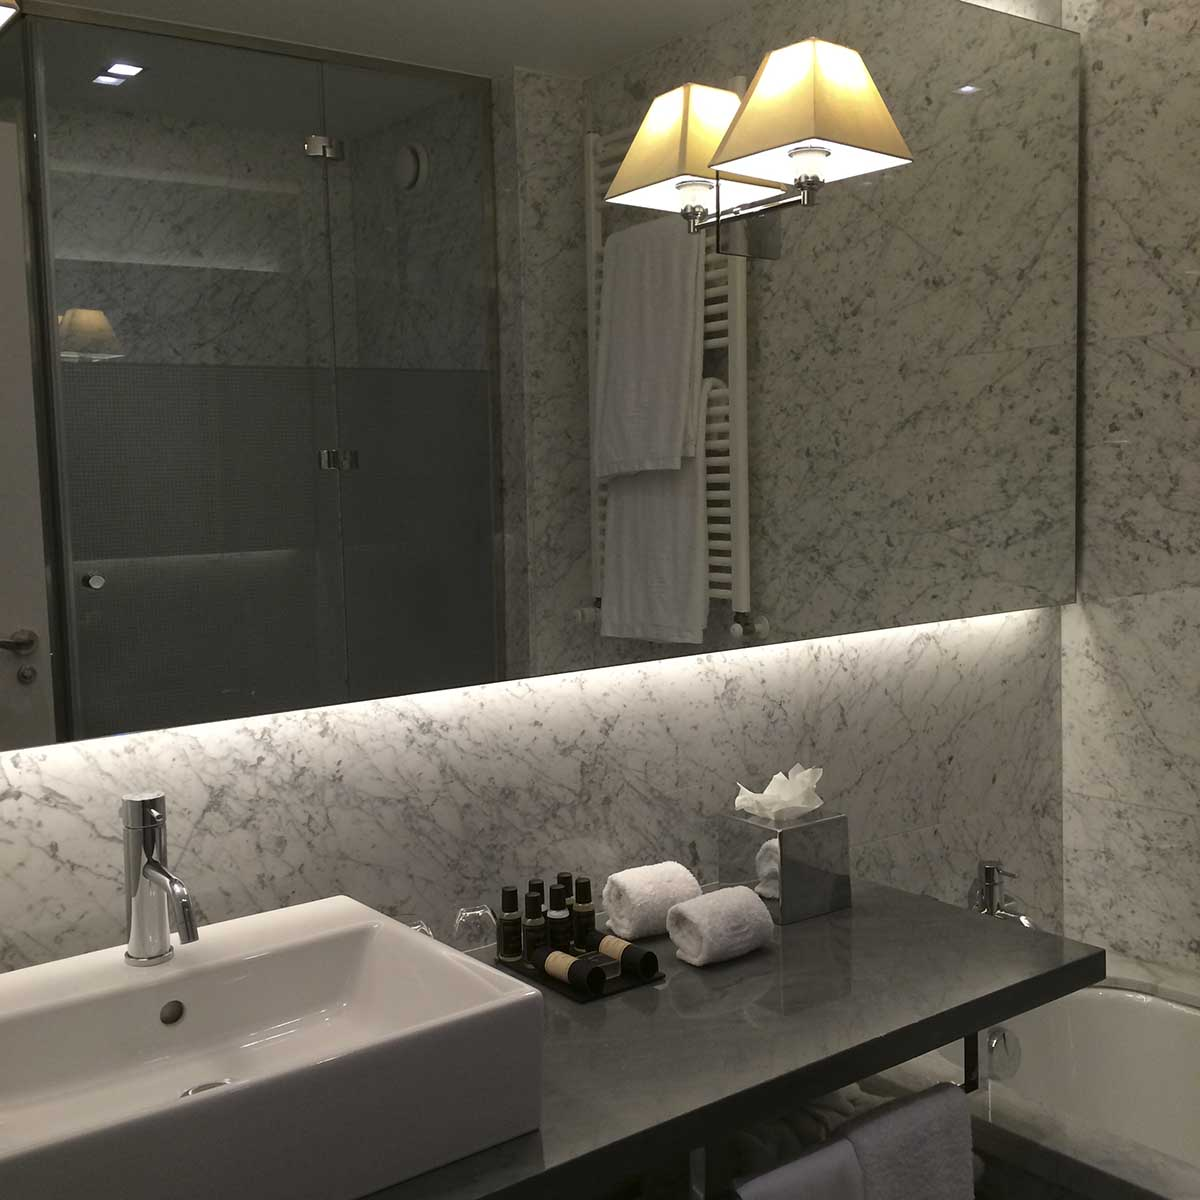 URSO Hotel, Madrid: marble bathroom